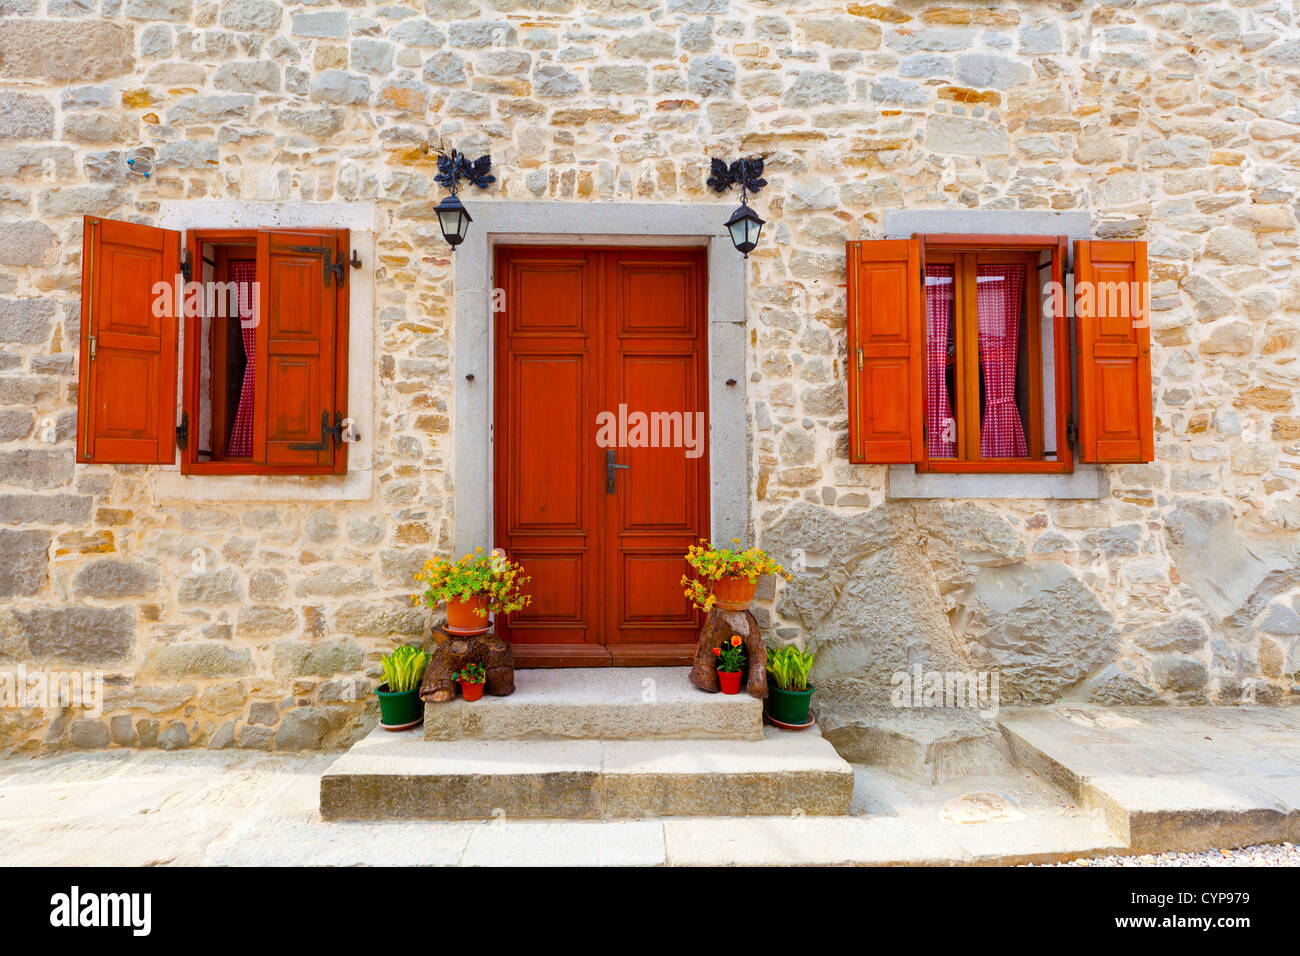 House With Wooden Windows And Doors Surrounded In The Stone Wall